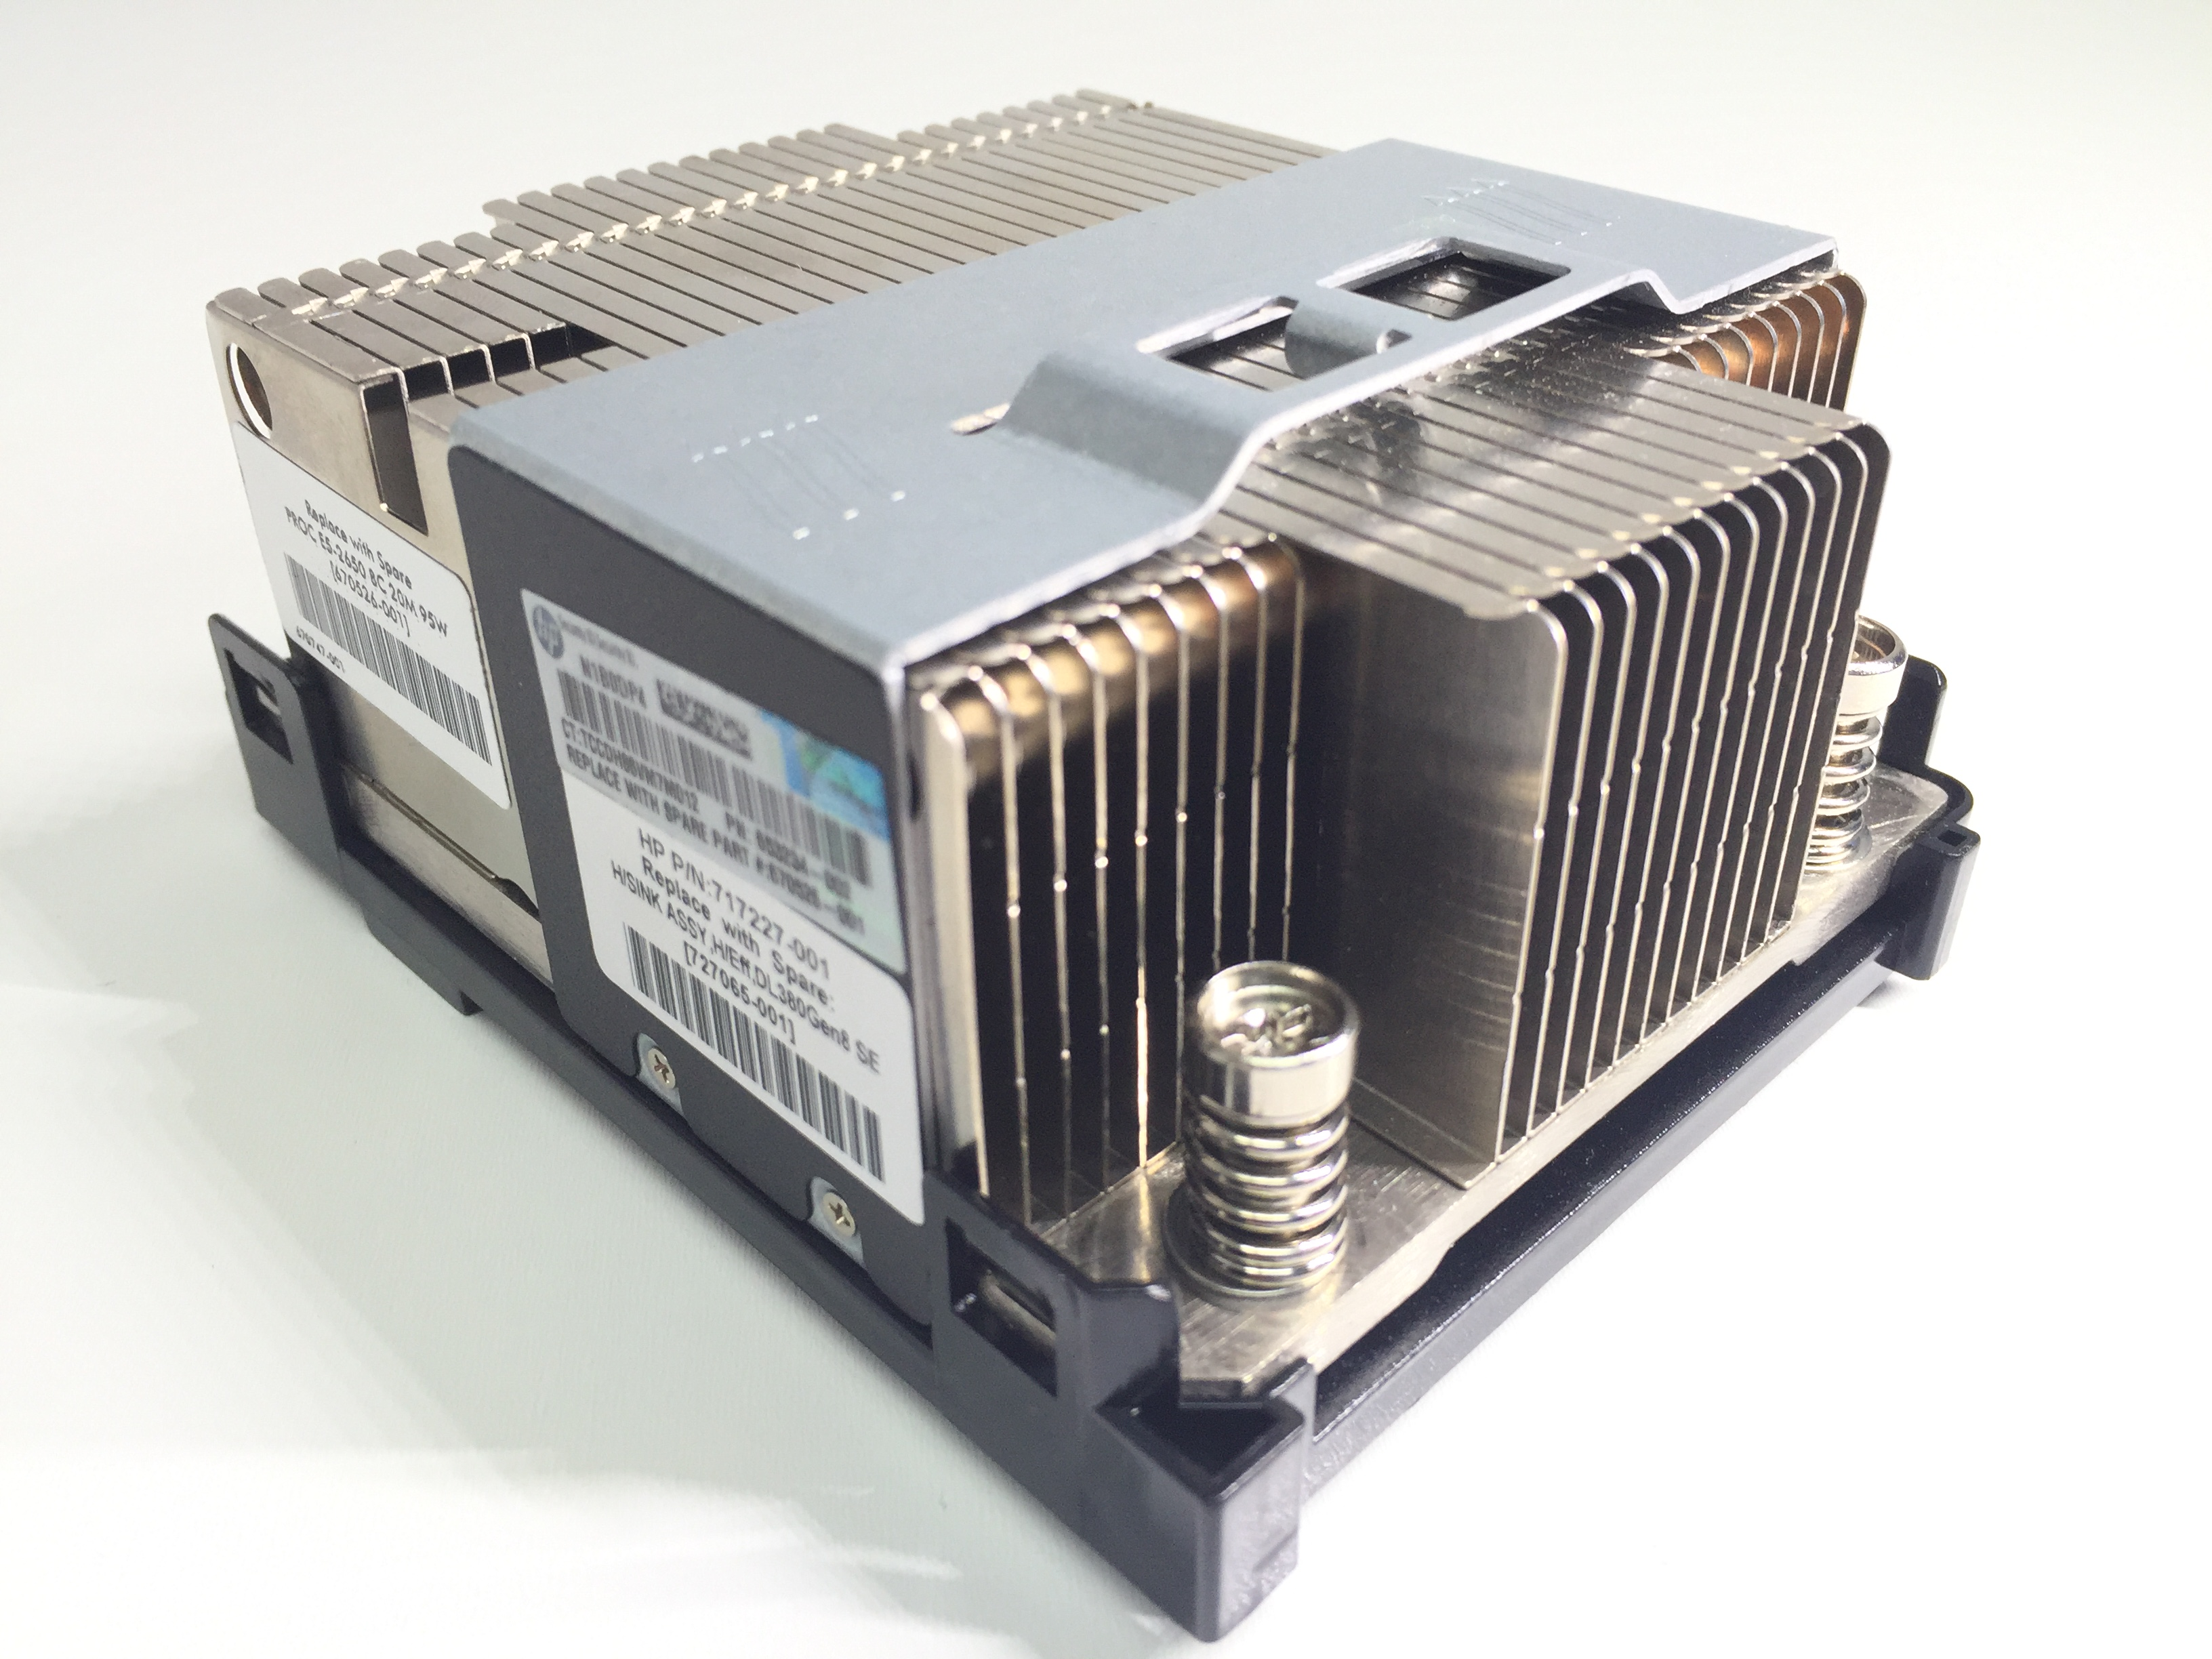 HP Proliant DL380 G8 Heatsink (727065-001)